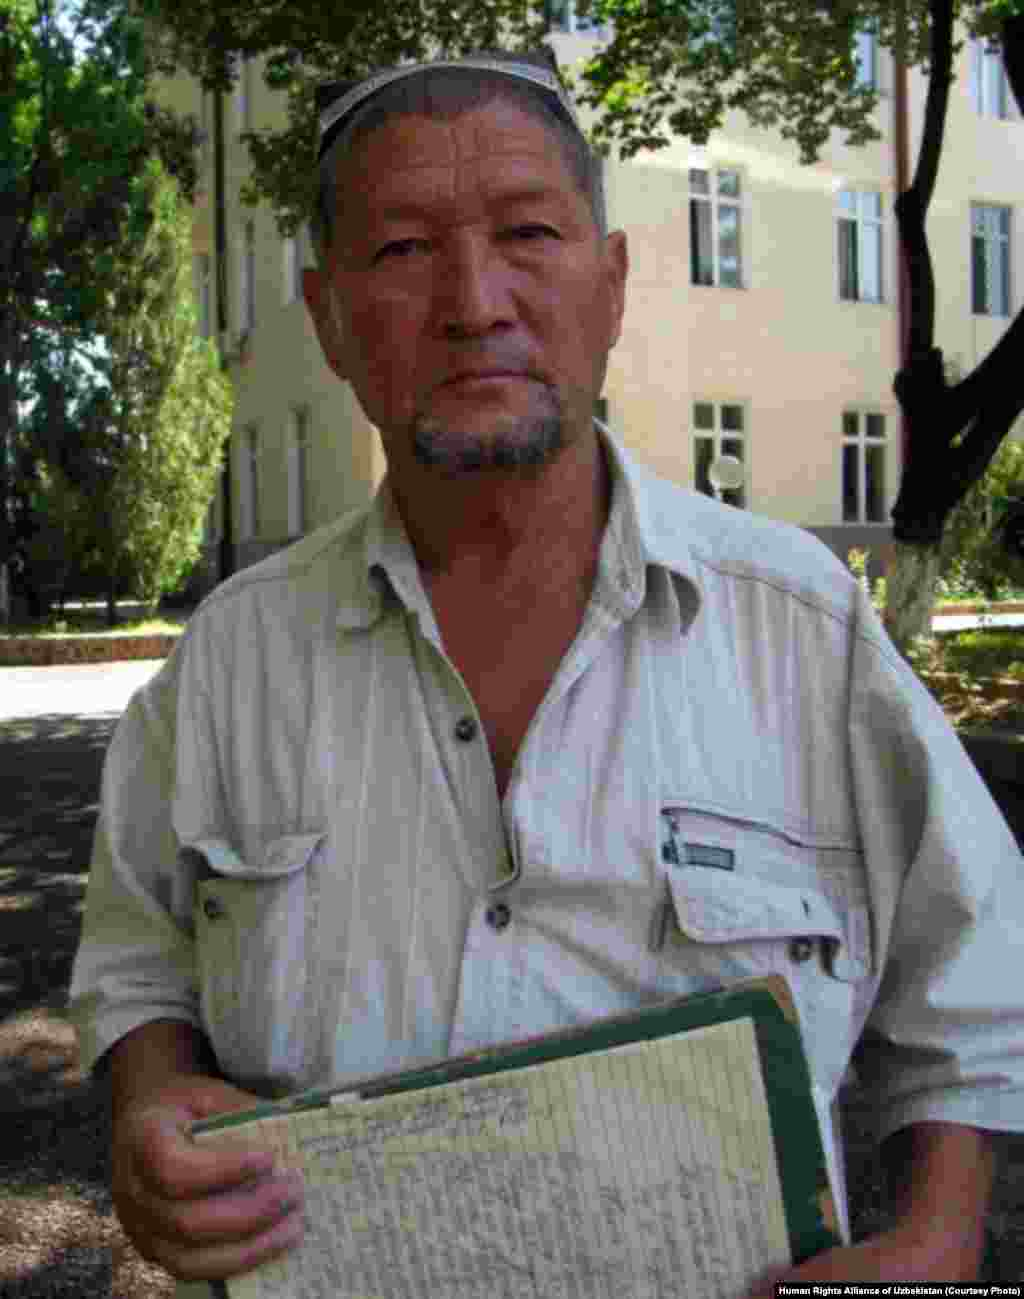 In 2013, Ferghana Valley-based activist Nematjon Siddikov was arrested after his family was assaulted at home by unknown assailants following his investigation into local police corruption. He was sentenced to six years but later released under amnesty.